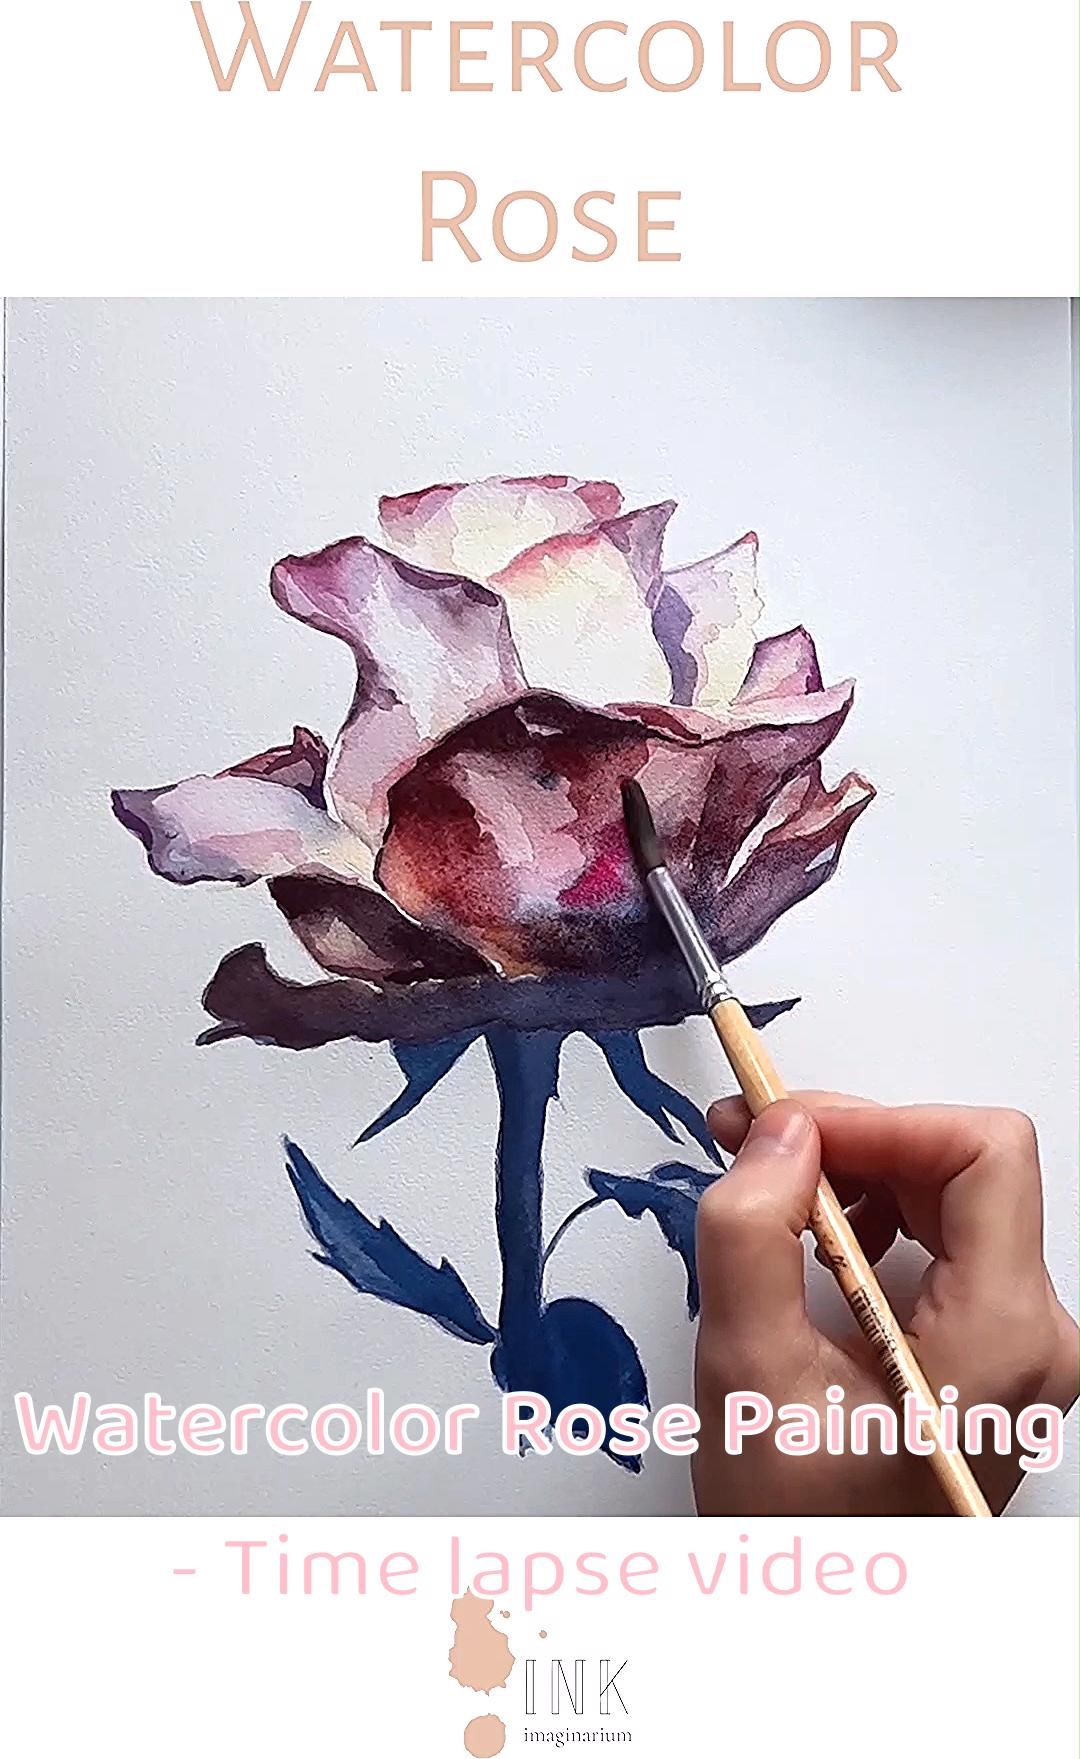 Enjoy watching the creative process behind this watercolor painting, how this beautiful rose is created and click if you want to see more videos in the blog! All painted by the visual artist Laura Manteca Martin from Ink Imaginarium. . . . . #watercolorvideo #watercolorprocess #watercolorspeedup #watercolorillustration #botanicalwatercolor #botanicalpainting #watercolorleaves #wallartdecor #botanicaldecor #watercolortimelapse #watercolorlove #watercolorobsession #watercolorrose #watercolorflower